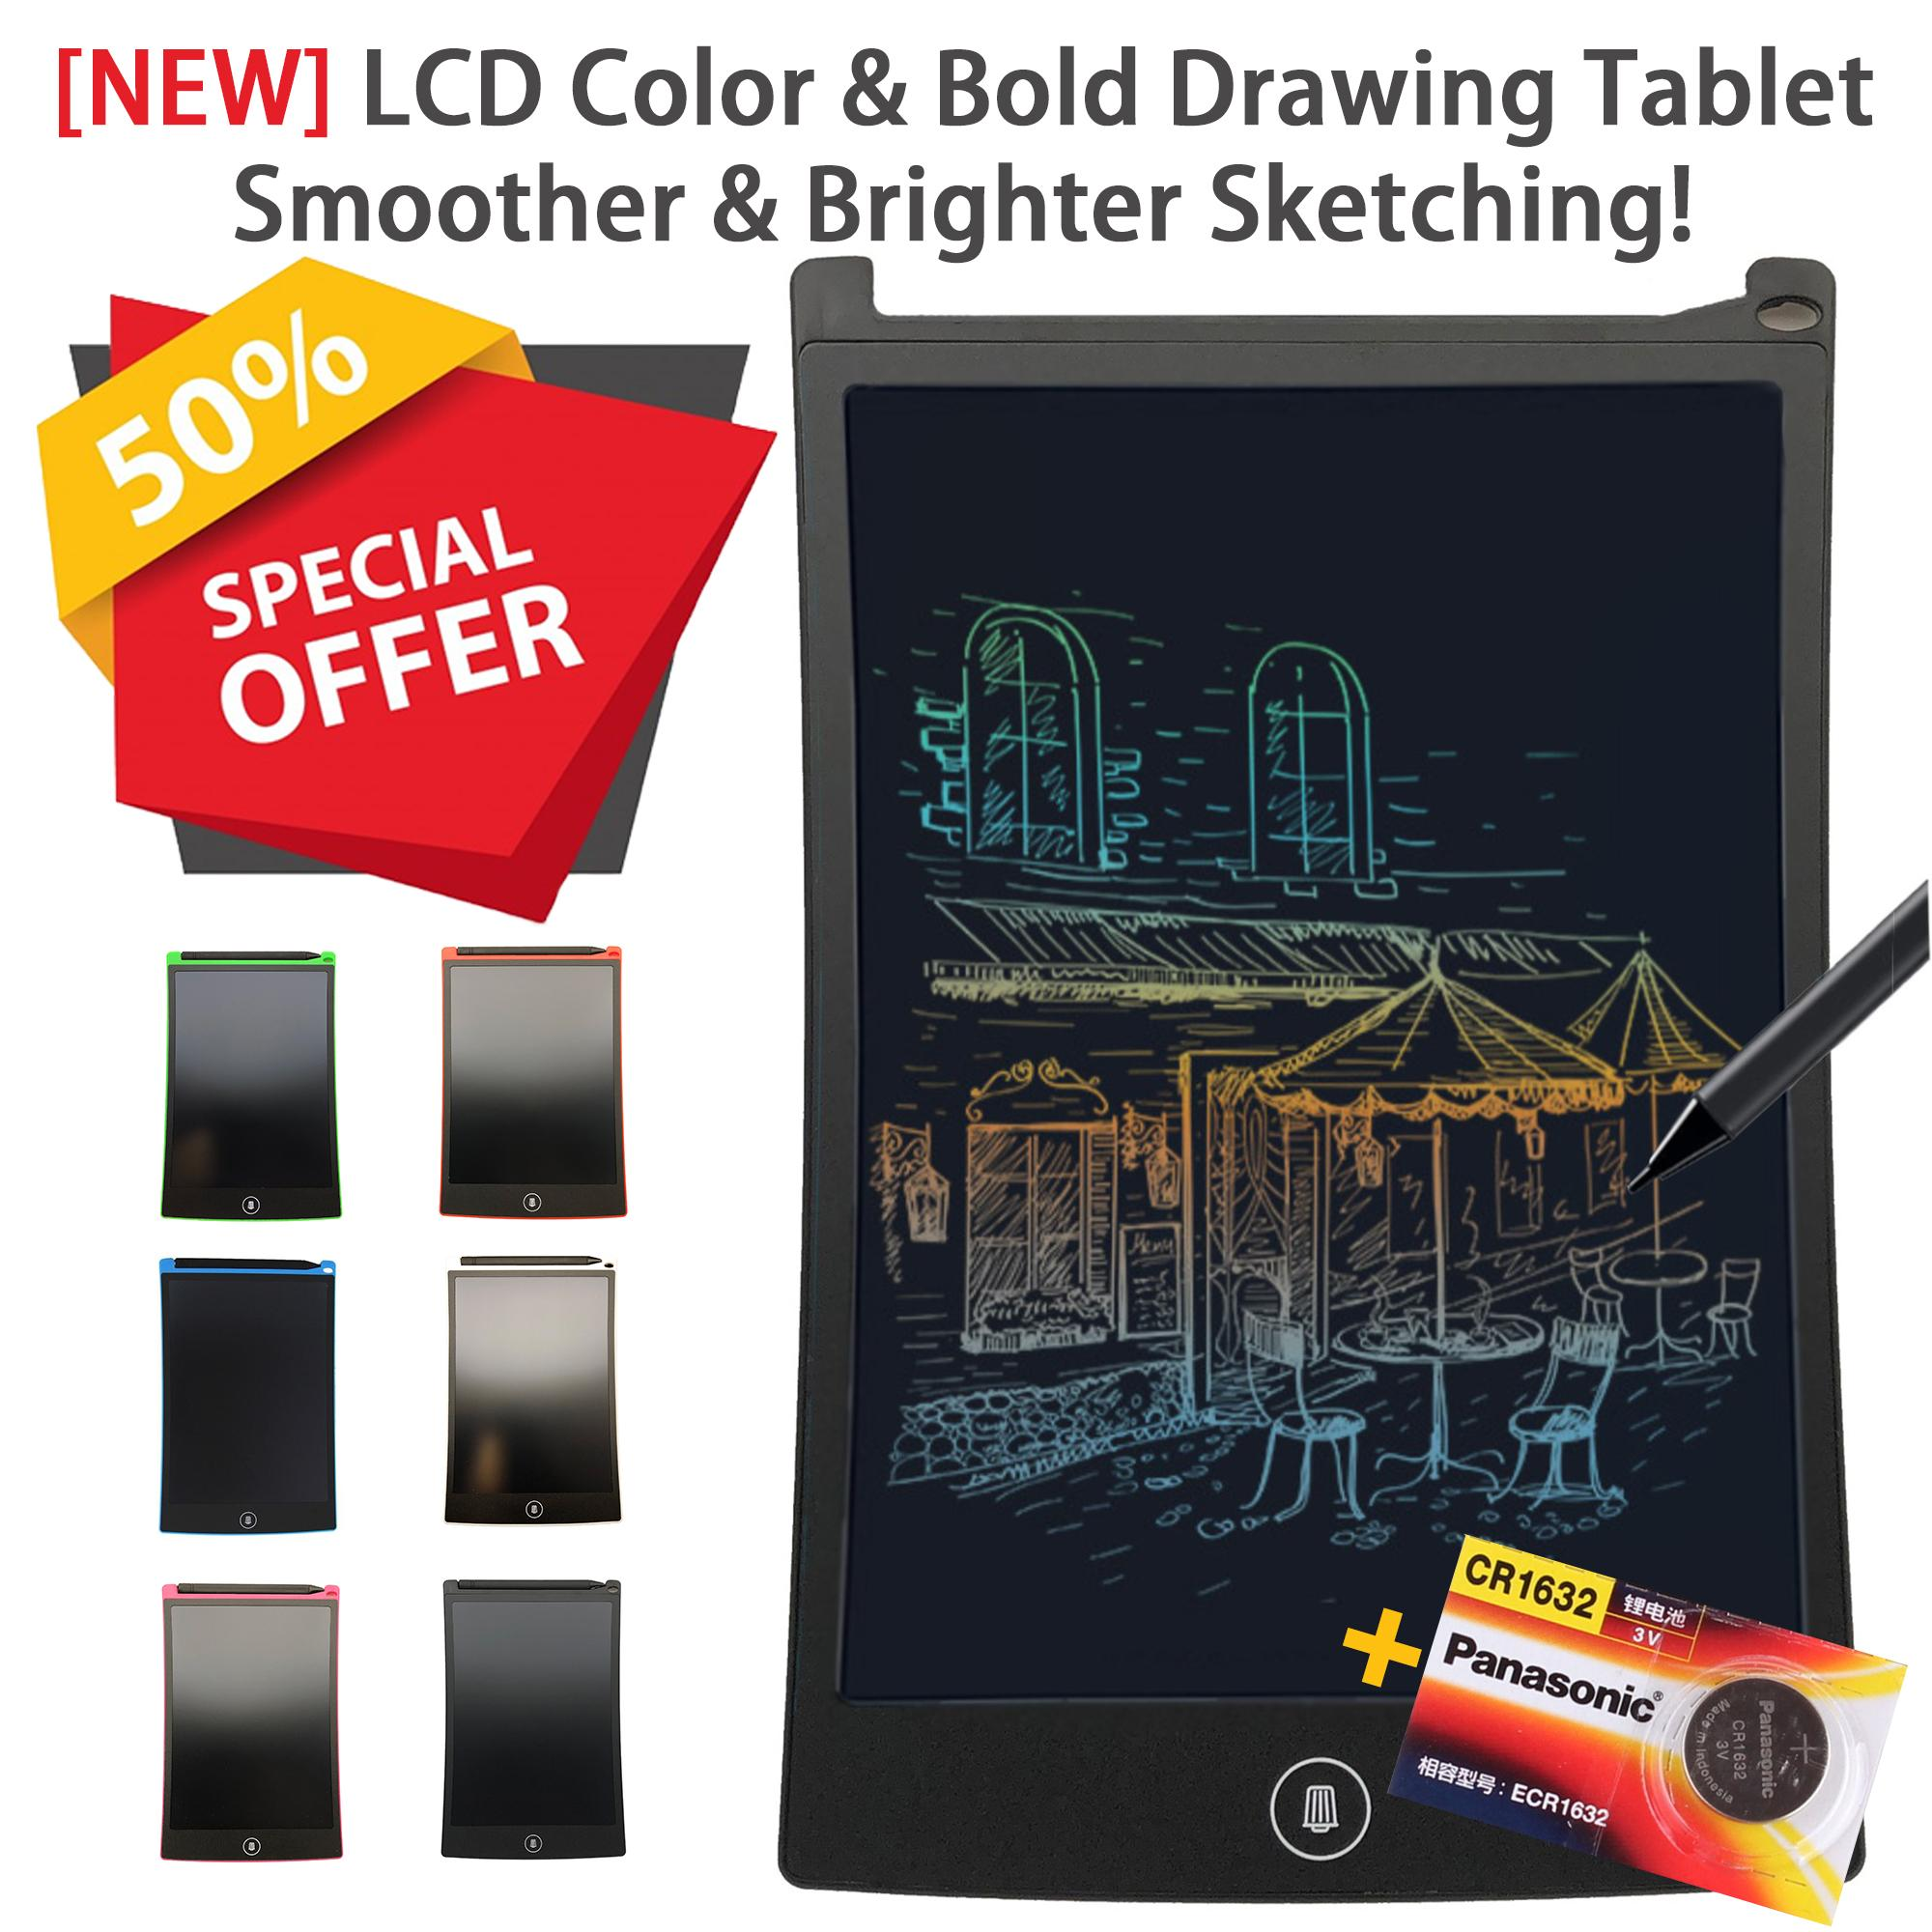 [New Model!!] 8.5 Inch COLOR and BOLD LCD Ultra Bright Drawing & Writing Memo Pad Tablet Digital Writing & Digital Drawing Graphics Board for Home Office & for Children